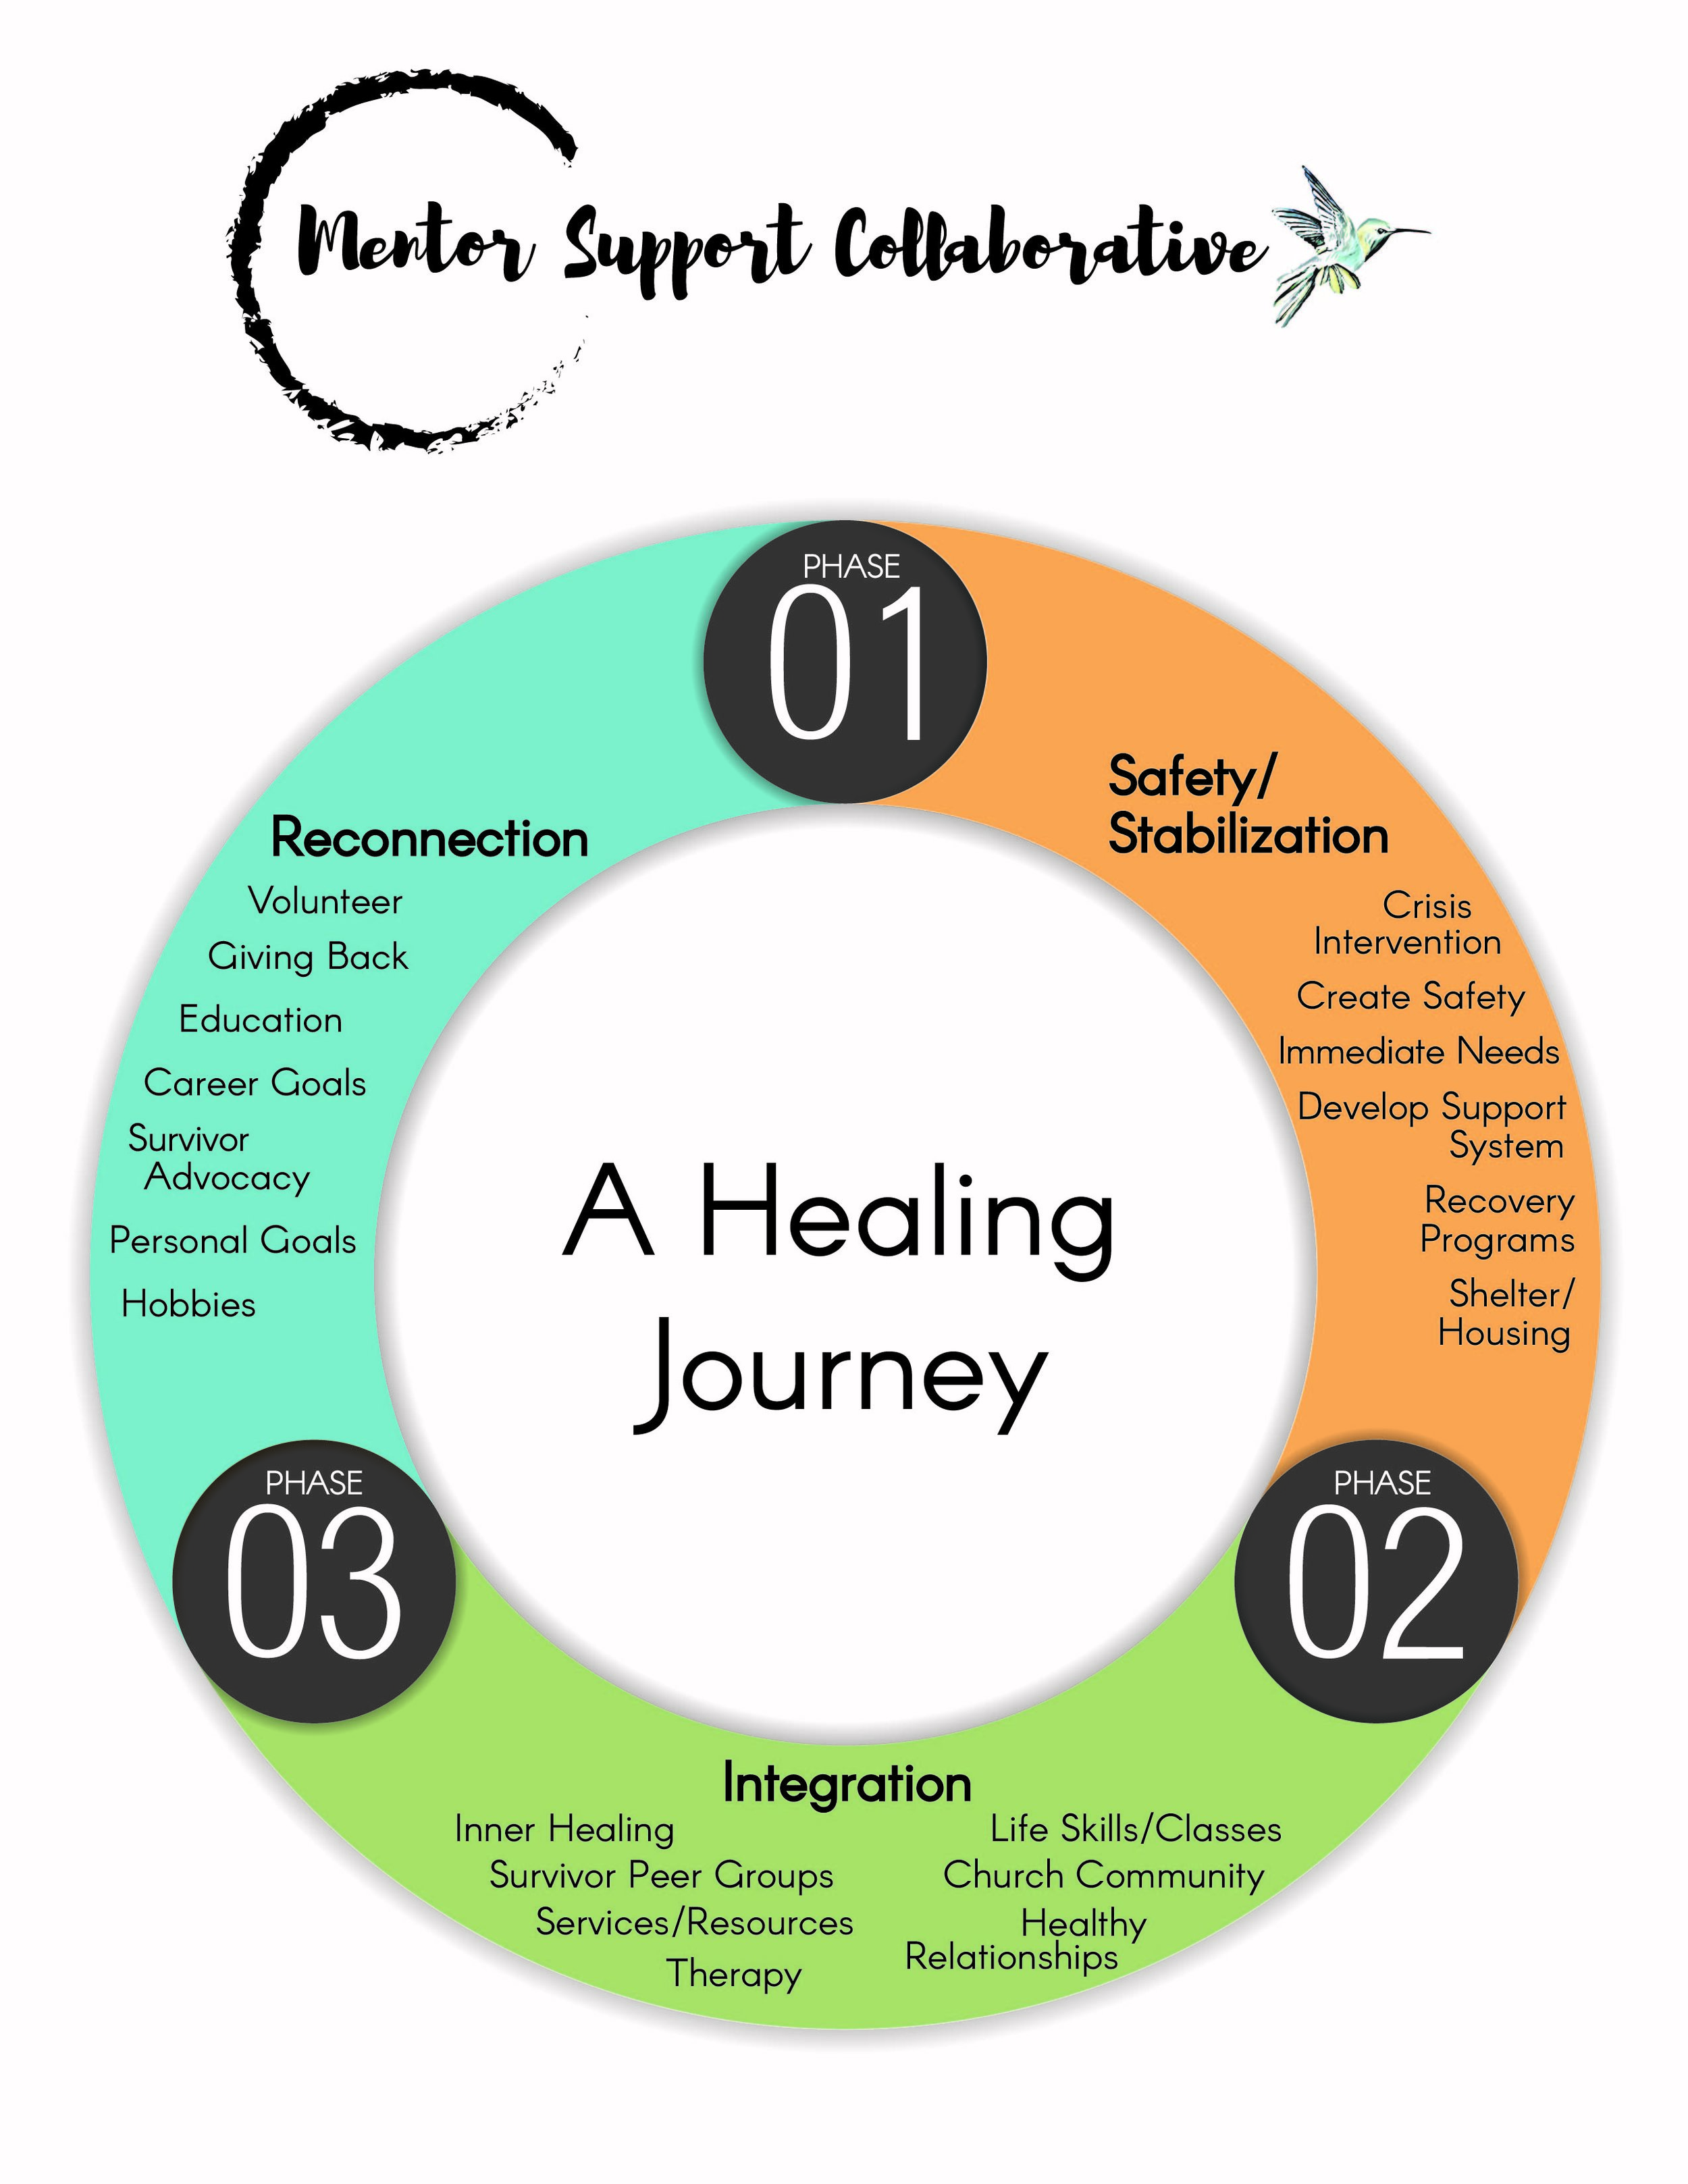 From Survivor to Thriver! - Based on clinical research, there are three phases of a healthy healing model. The categories listed in each phase have multiple options within that category. Every survivor is in a different place (physically, emotionally, and spiritually) so an action plan allows for an individual healing pathway with many options of programs, classes, counseling, therapy, and other aftercare resources offered by community partners and churches, both faith and non-faith based.We connect potential mentees to healthy informed trained mentors, who have experience walking alongside complex trauma survivors through their healing journey. Mentors help mentees find a good-fitting trauma counselor and other resources provided by community partners.